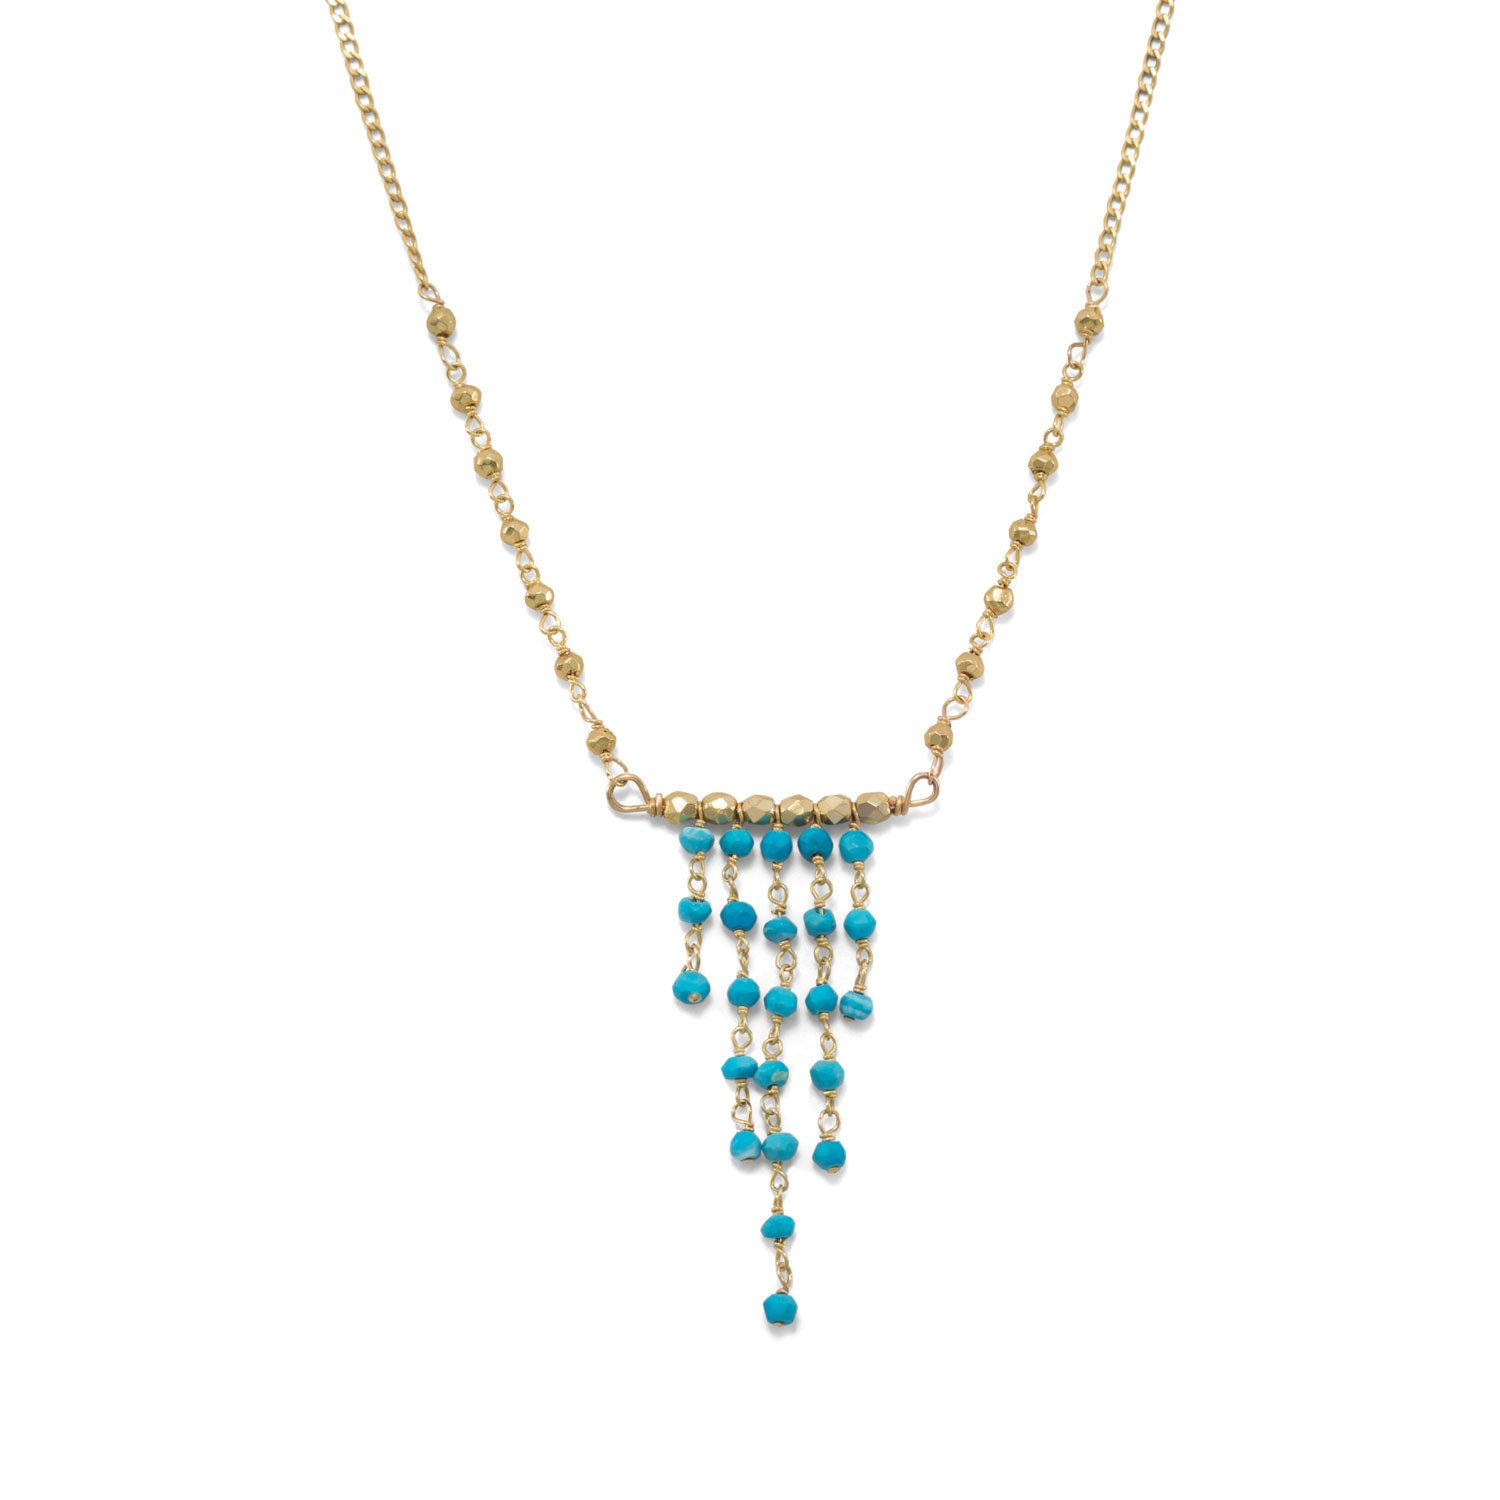 14K Gold Plated Necklace with Graduated Reconstituted Turquoise Center Drop